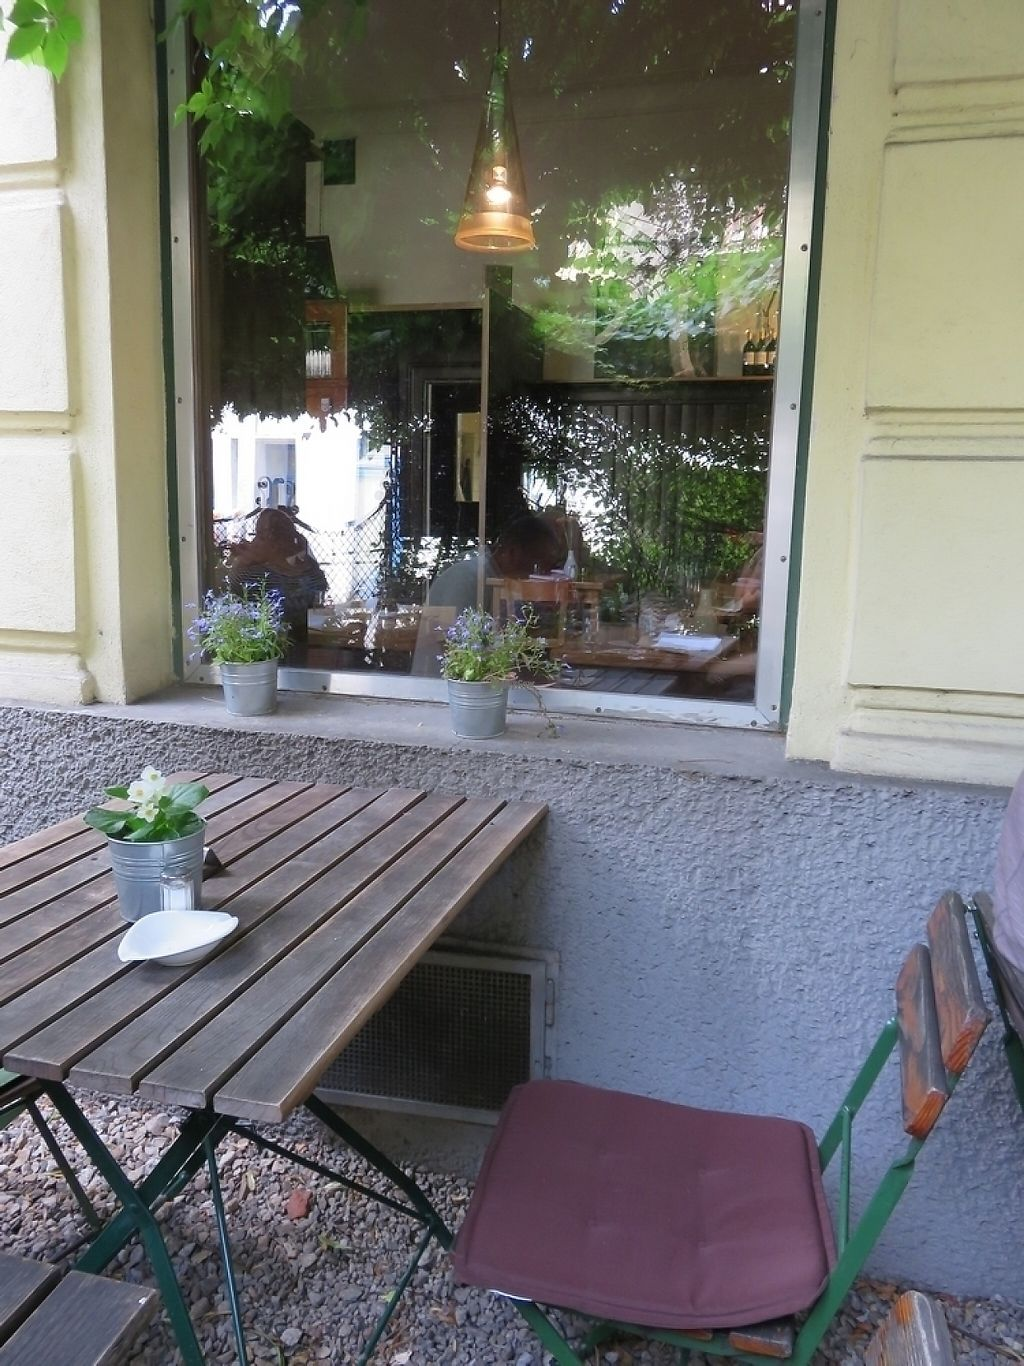 """Photo of Hollerei  by <a href=""""/members/profile/TrudiBruges"""">TrudiBruges</a> <br/>front terrace Hollerei Vienna <br/> November 23, 2016  - <a href='/contact/abuse/image/584/193417'>Report</a>"""